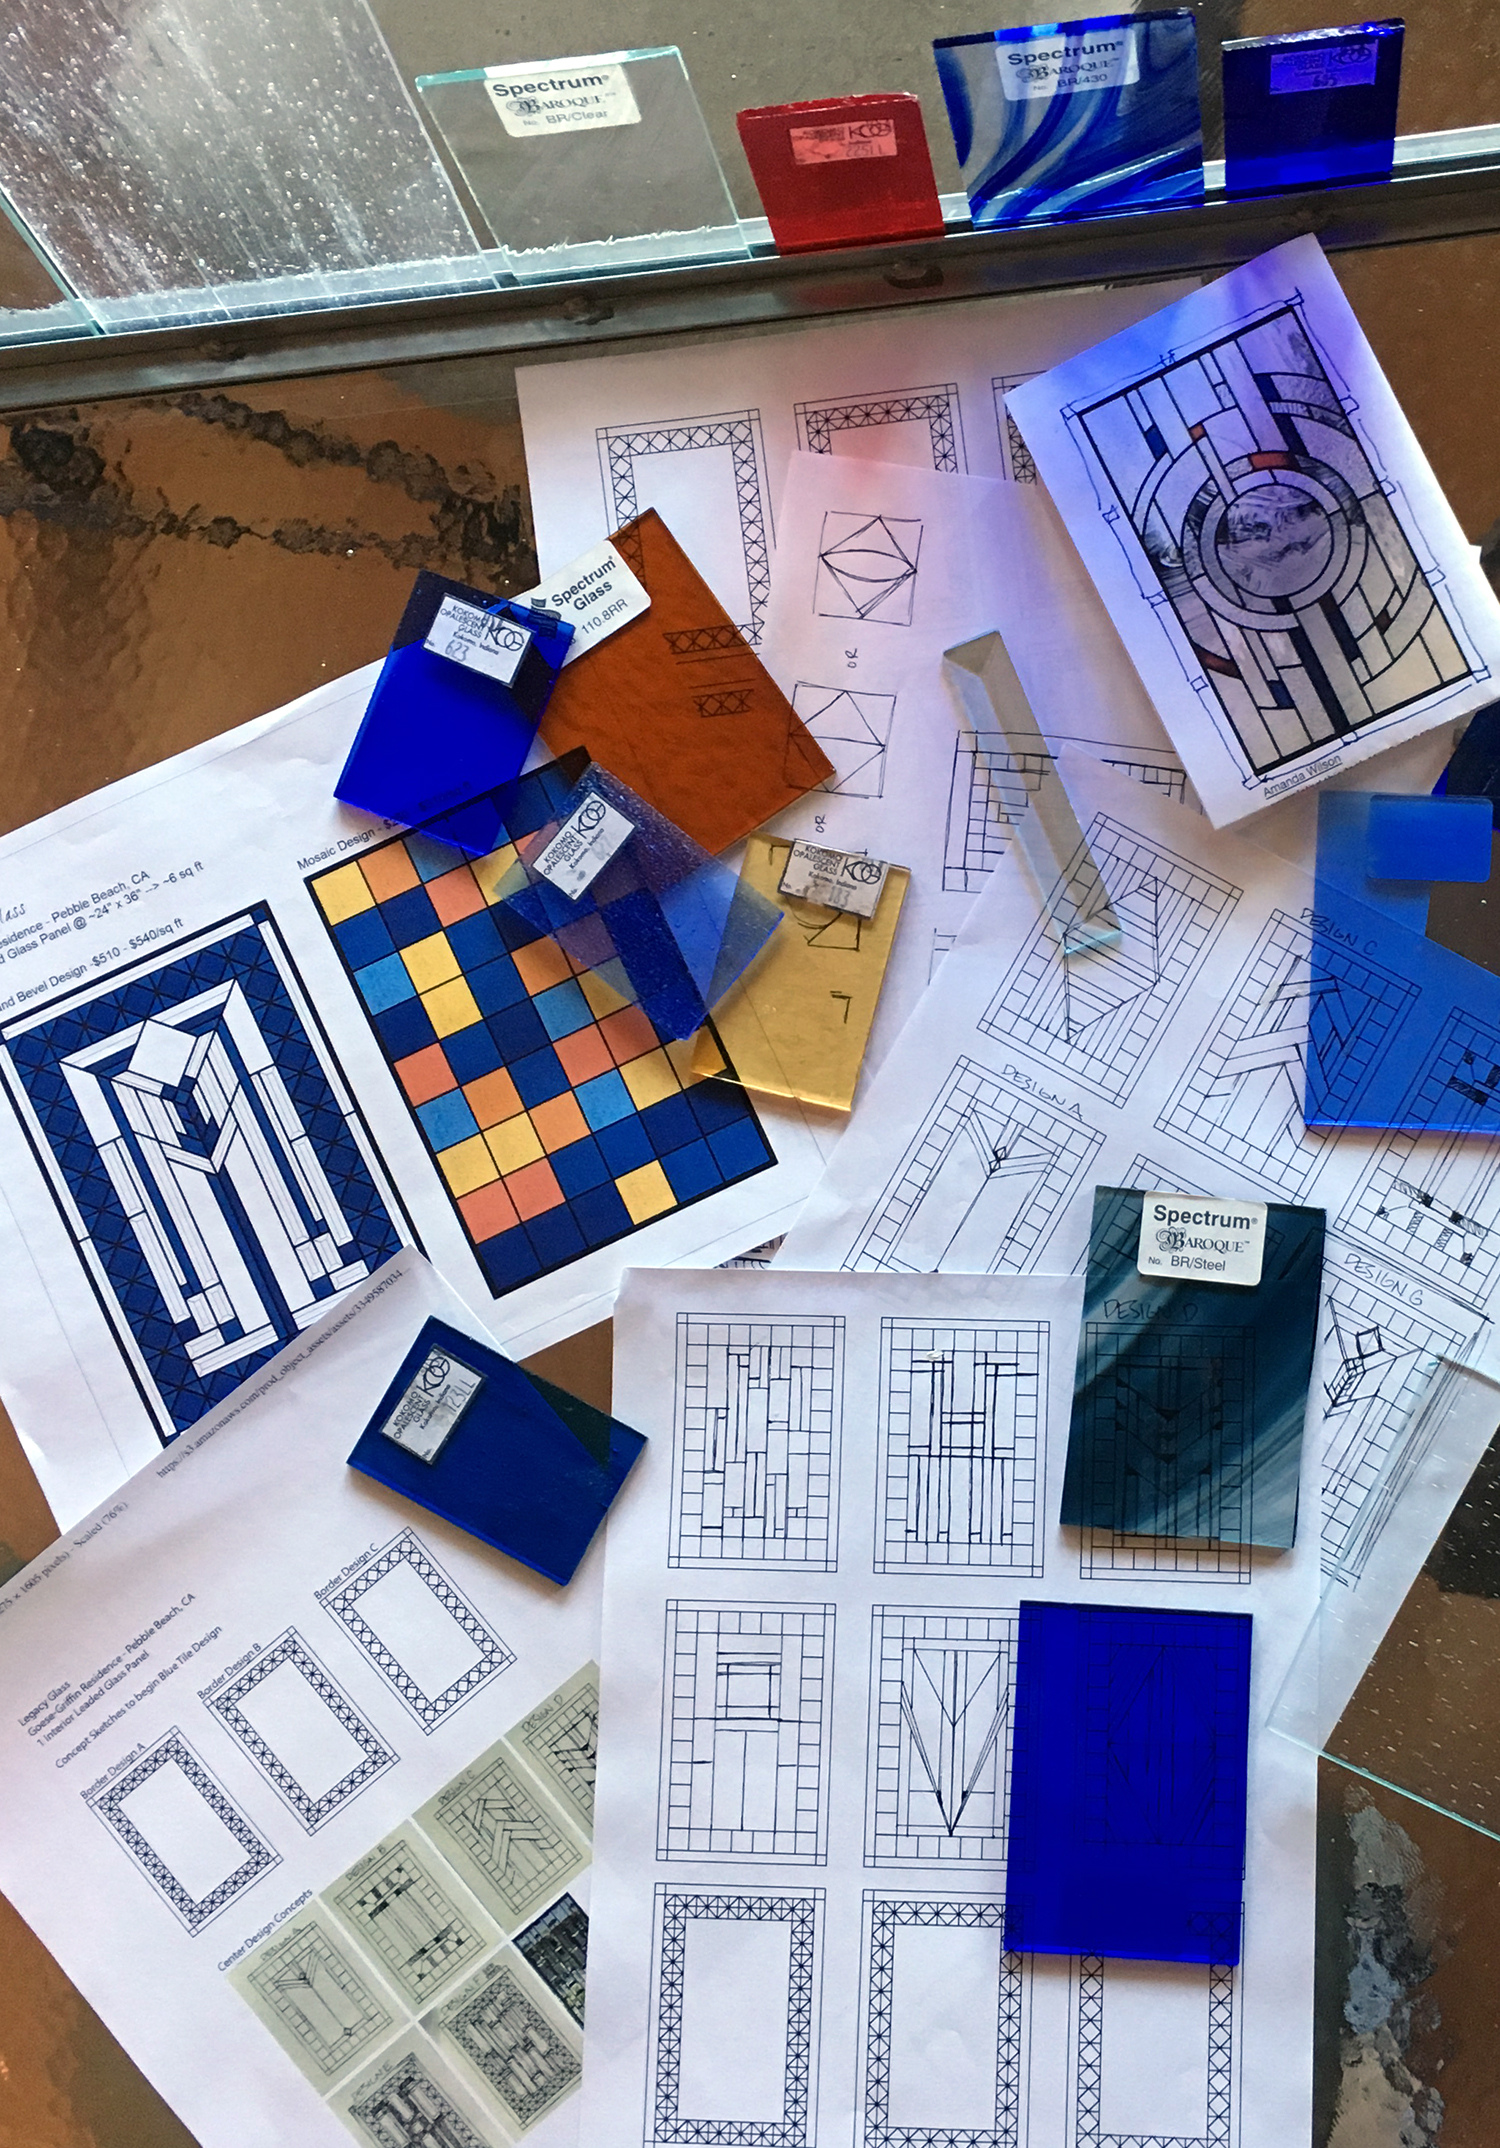 stained glass consultation samples sketches design leaded glass stained glass window palo alto atherton california san francisco san jose legacy glass.jpg